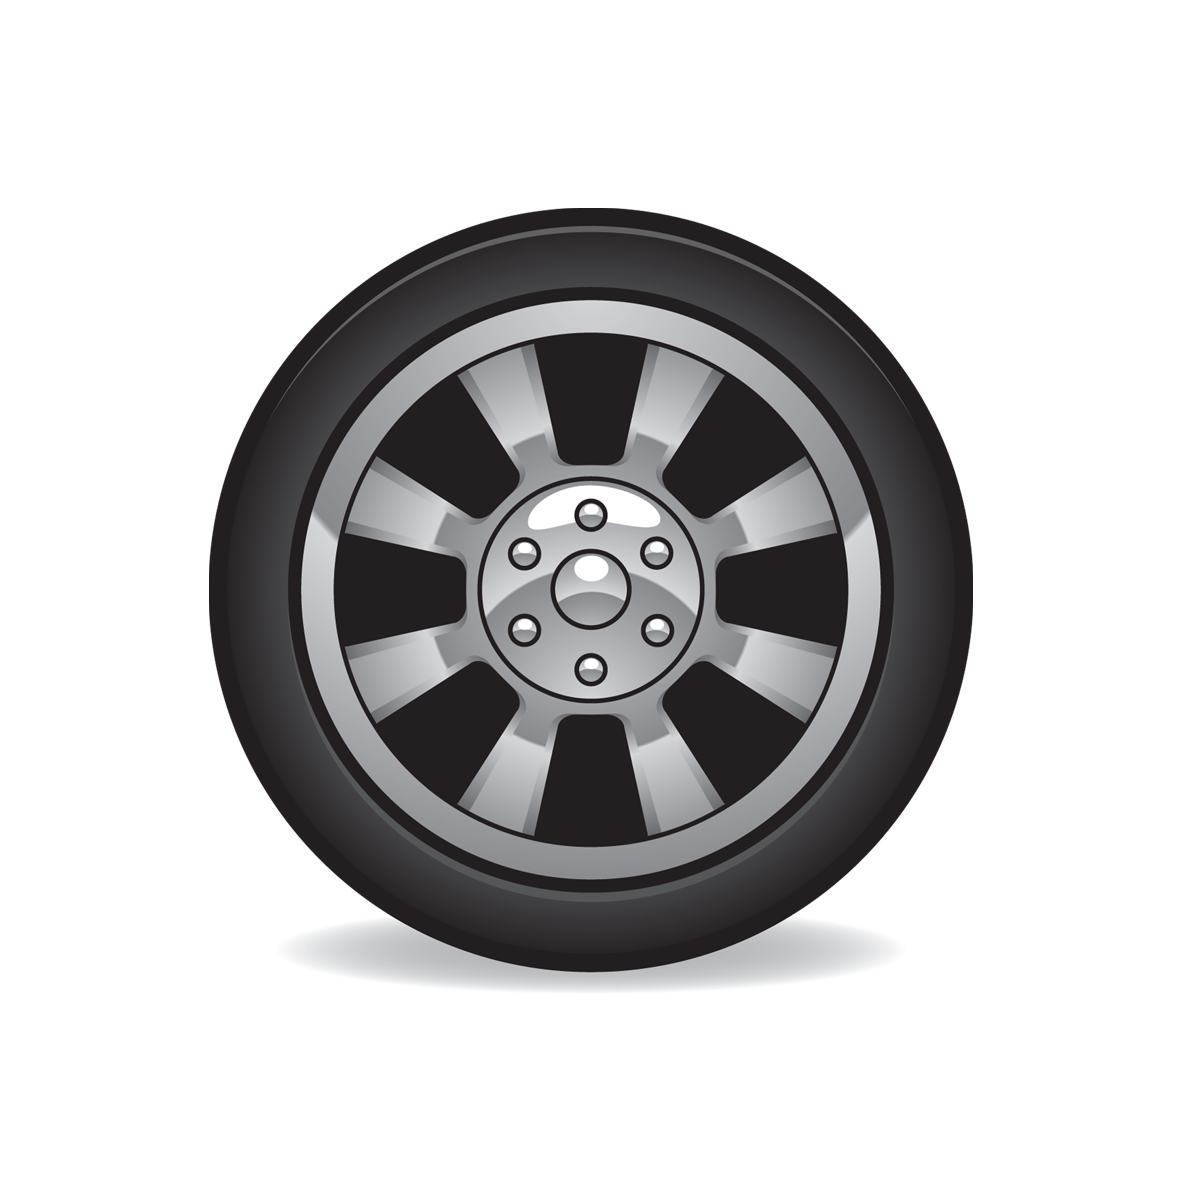 Tire Icon Full Size   Free Images At Clker Com   Vector Clip Art